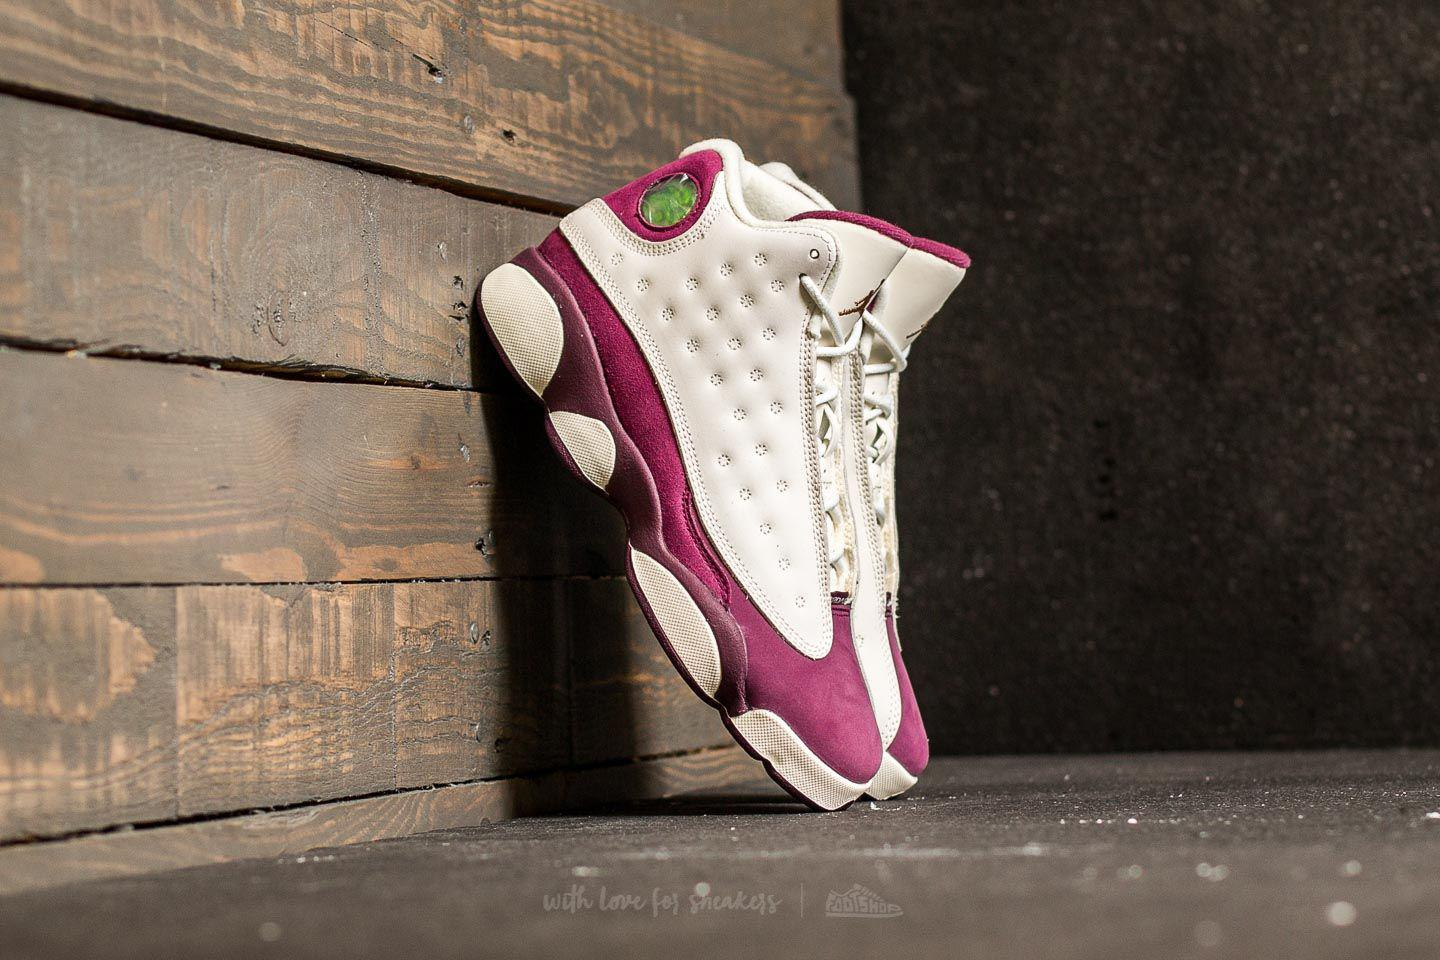 1b84b581673 nike--Air-Retro-13-Gg-Sail-Metallic-Red-Bronze-bordeaux.jpeg